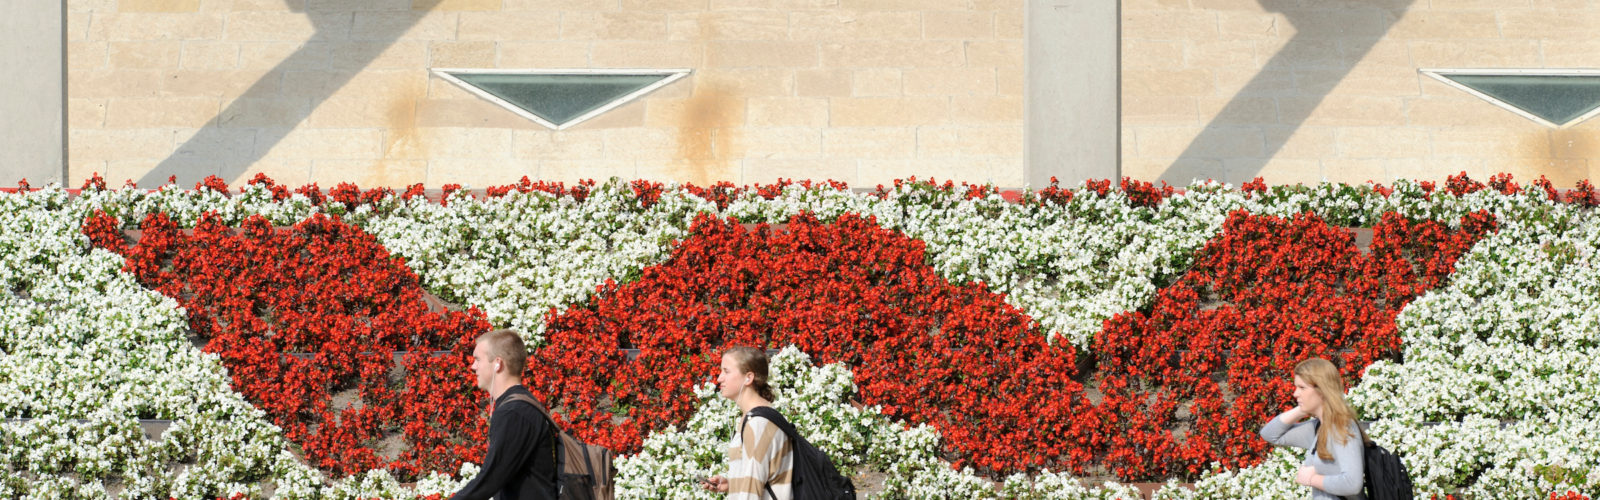 "Students walk past a red and white flowerbed in the shape of a ""W""."